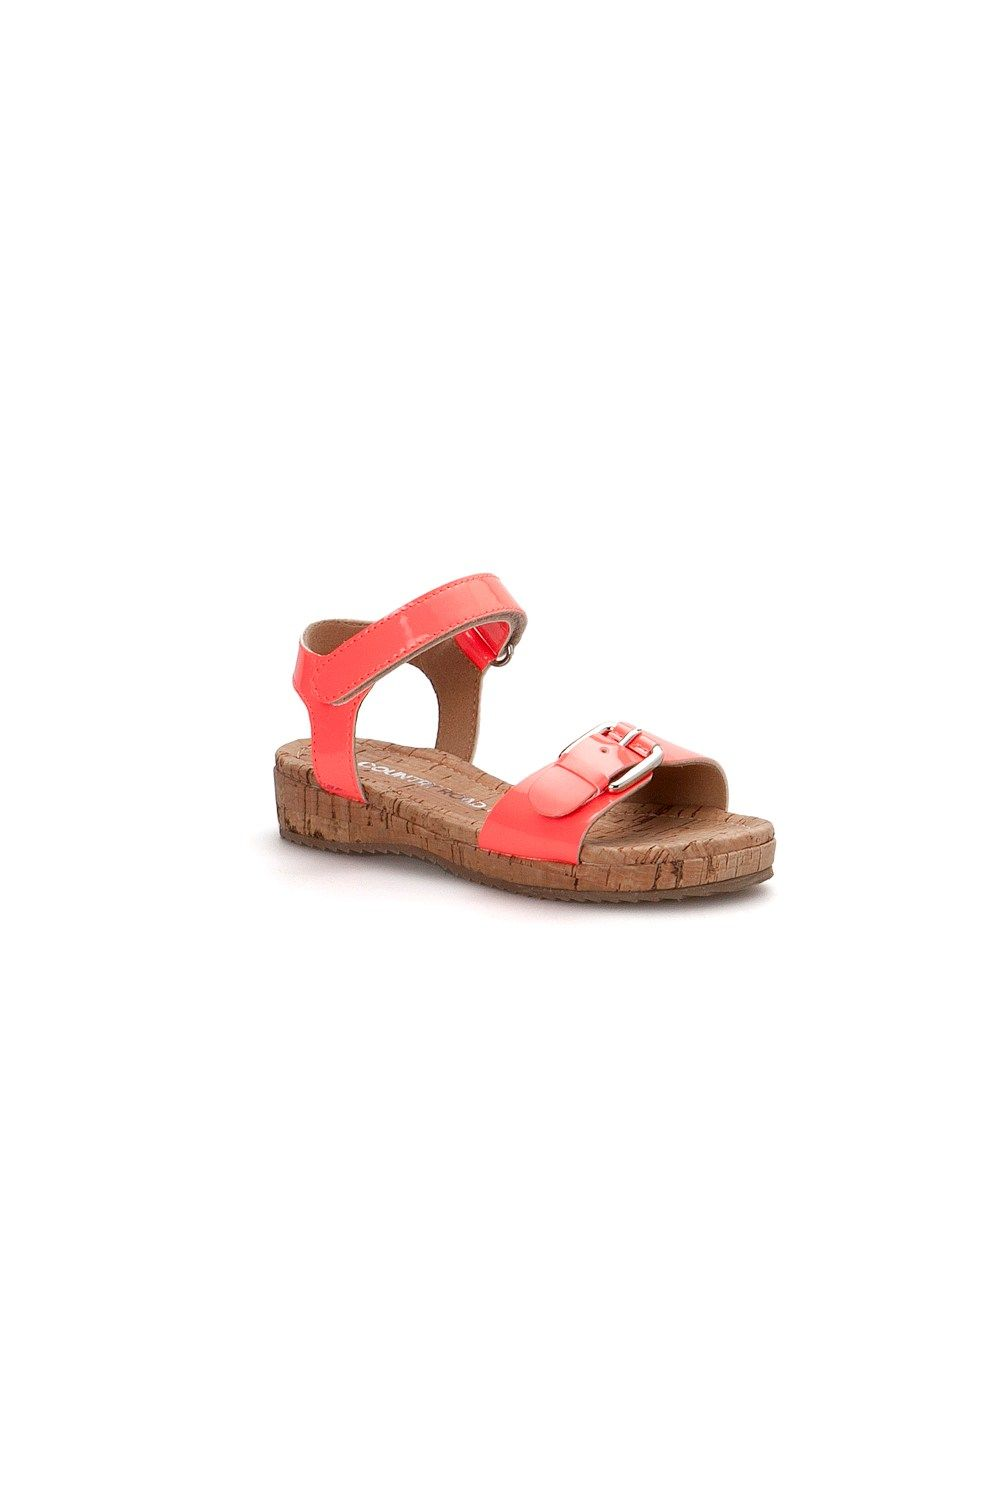 Country Road - Girl's Shoes & Footwear Online - Cork Sandal